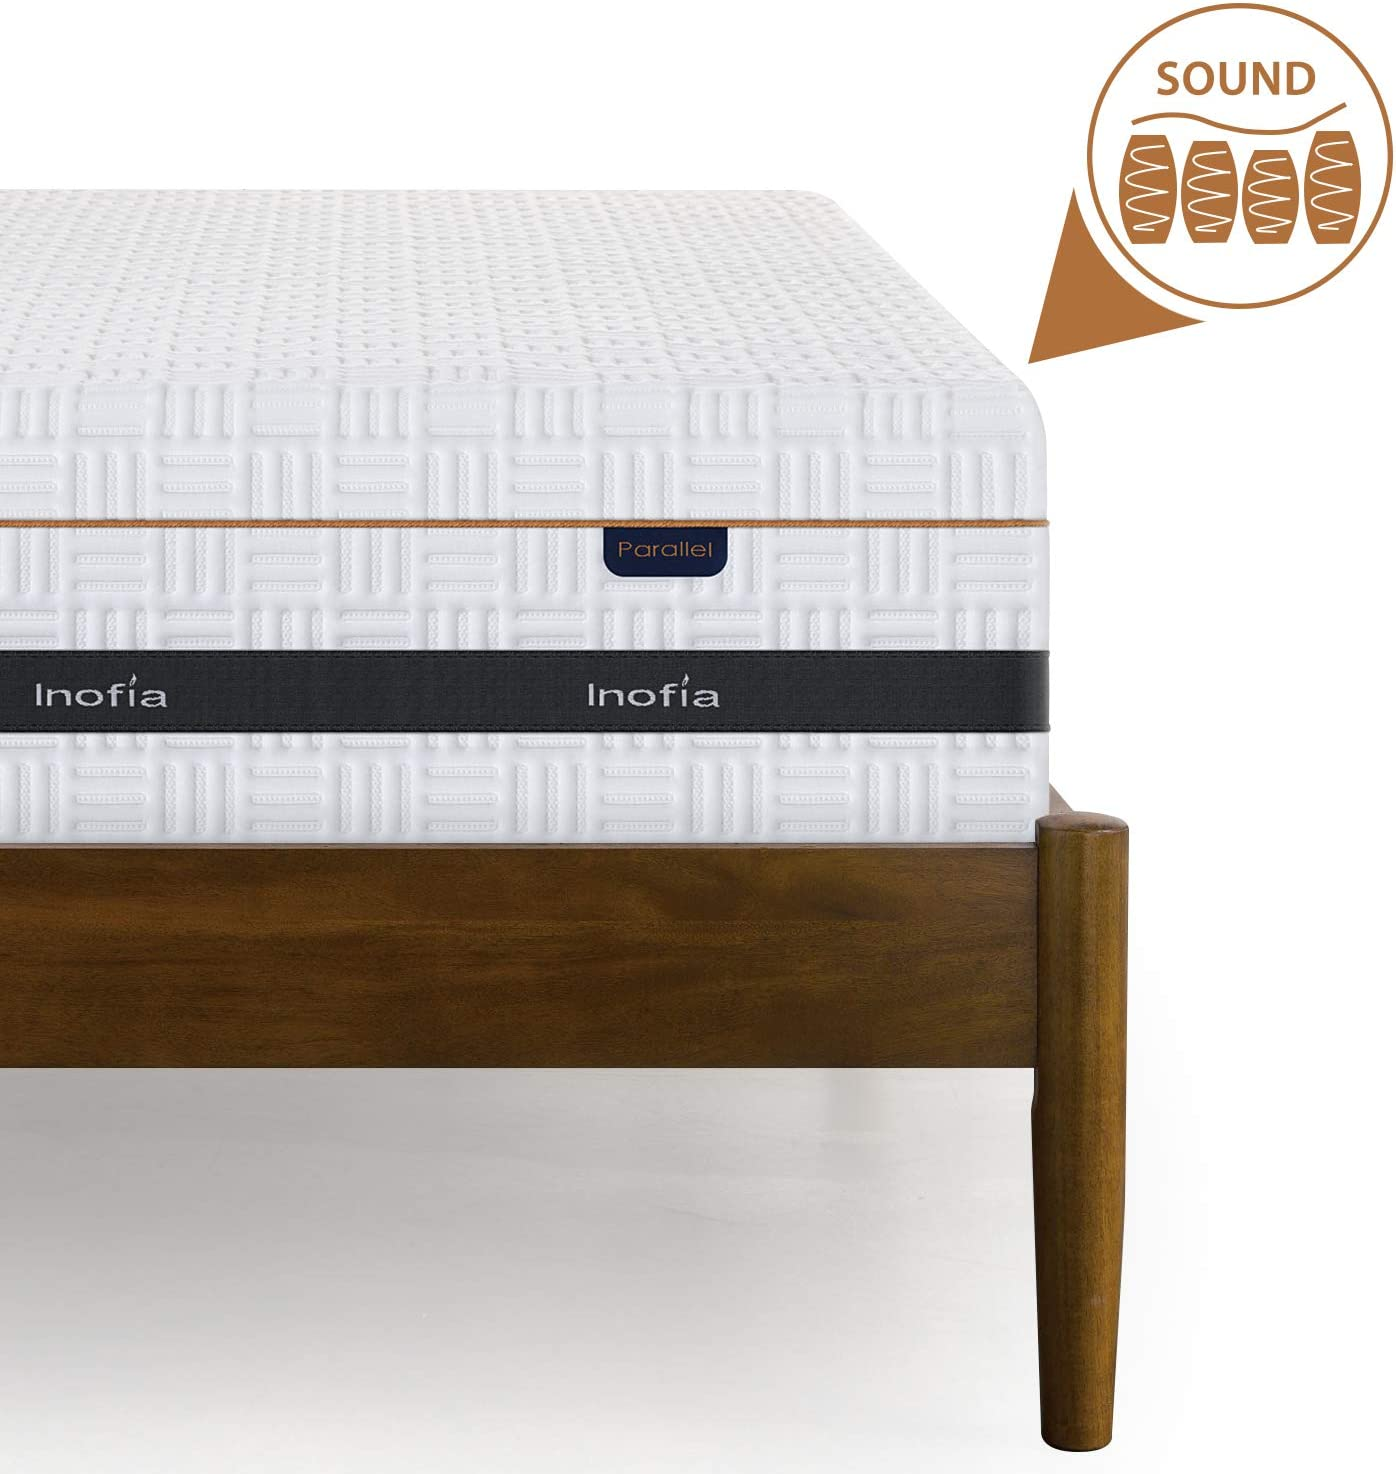 Memory Foam and Spring Round Top Mattress,7-zone Barrel-type Less Friction Spring,Premium Flexible Cover OEKO-TEX/®100,100Night Trial Sleep,Parallel Collection Height 25cm Inofia Double Mattress